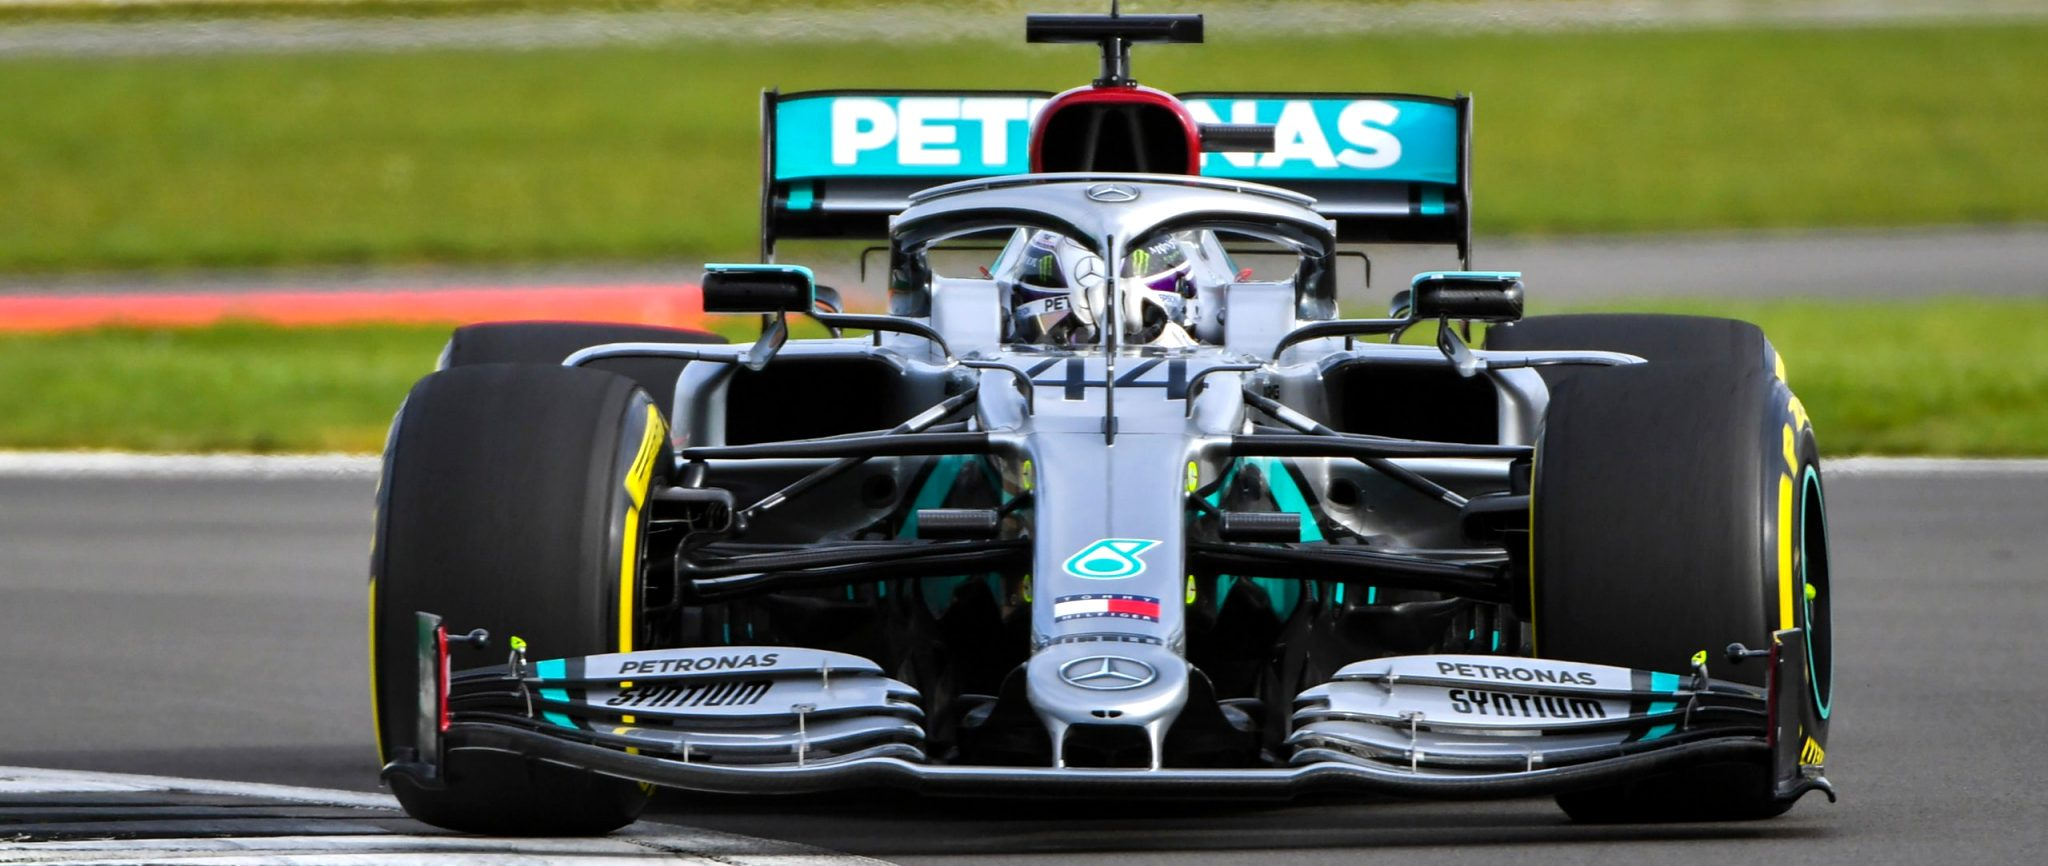 2021 mercedes f1 car specs Performance and New Engine